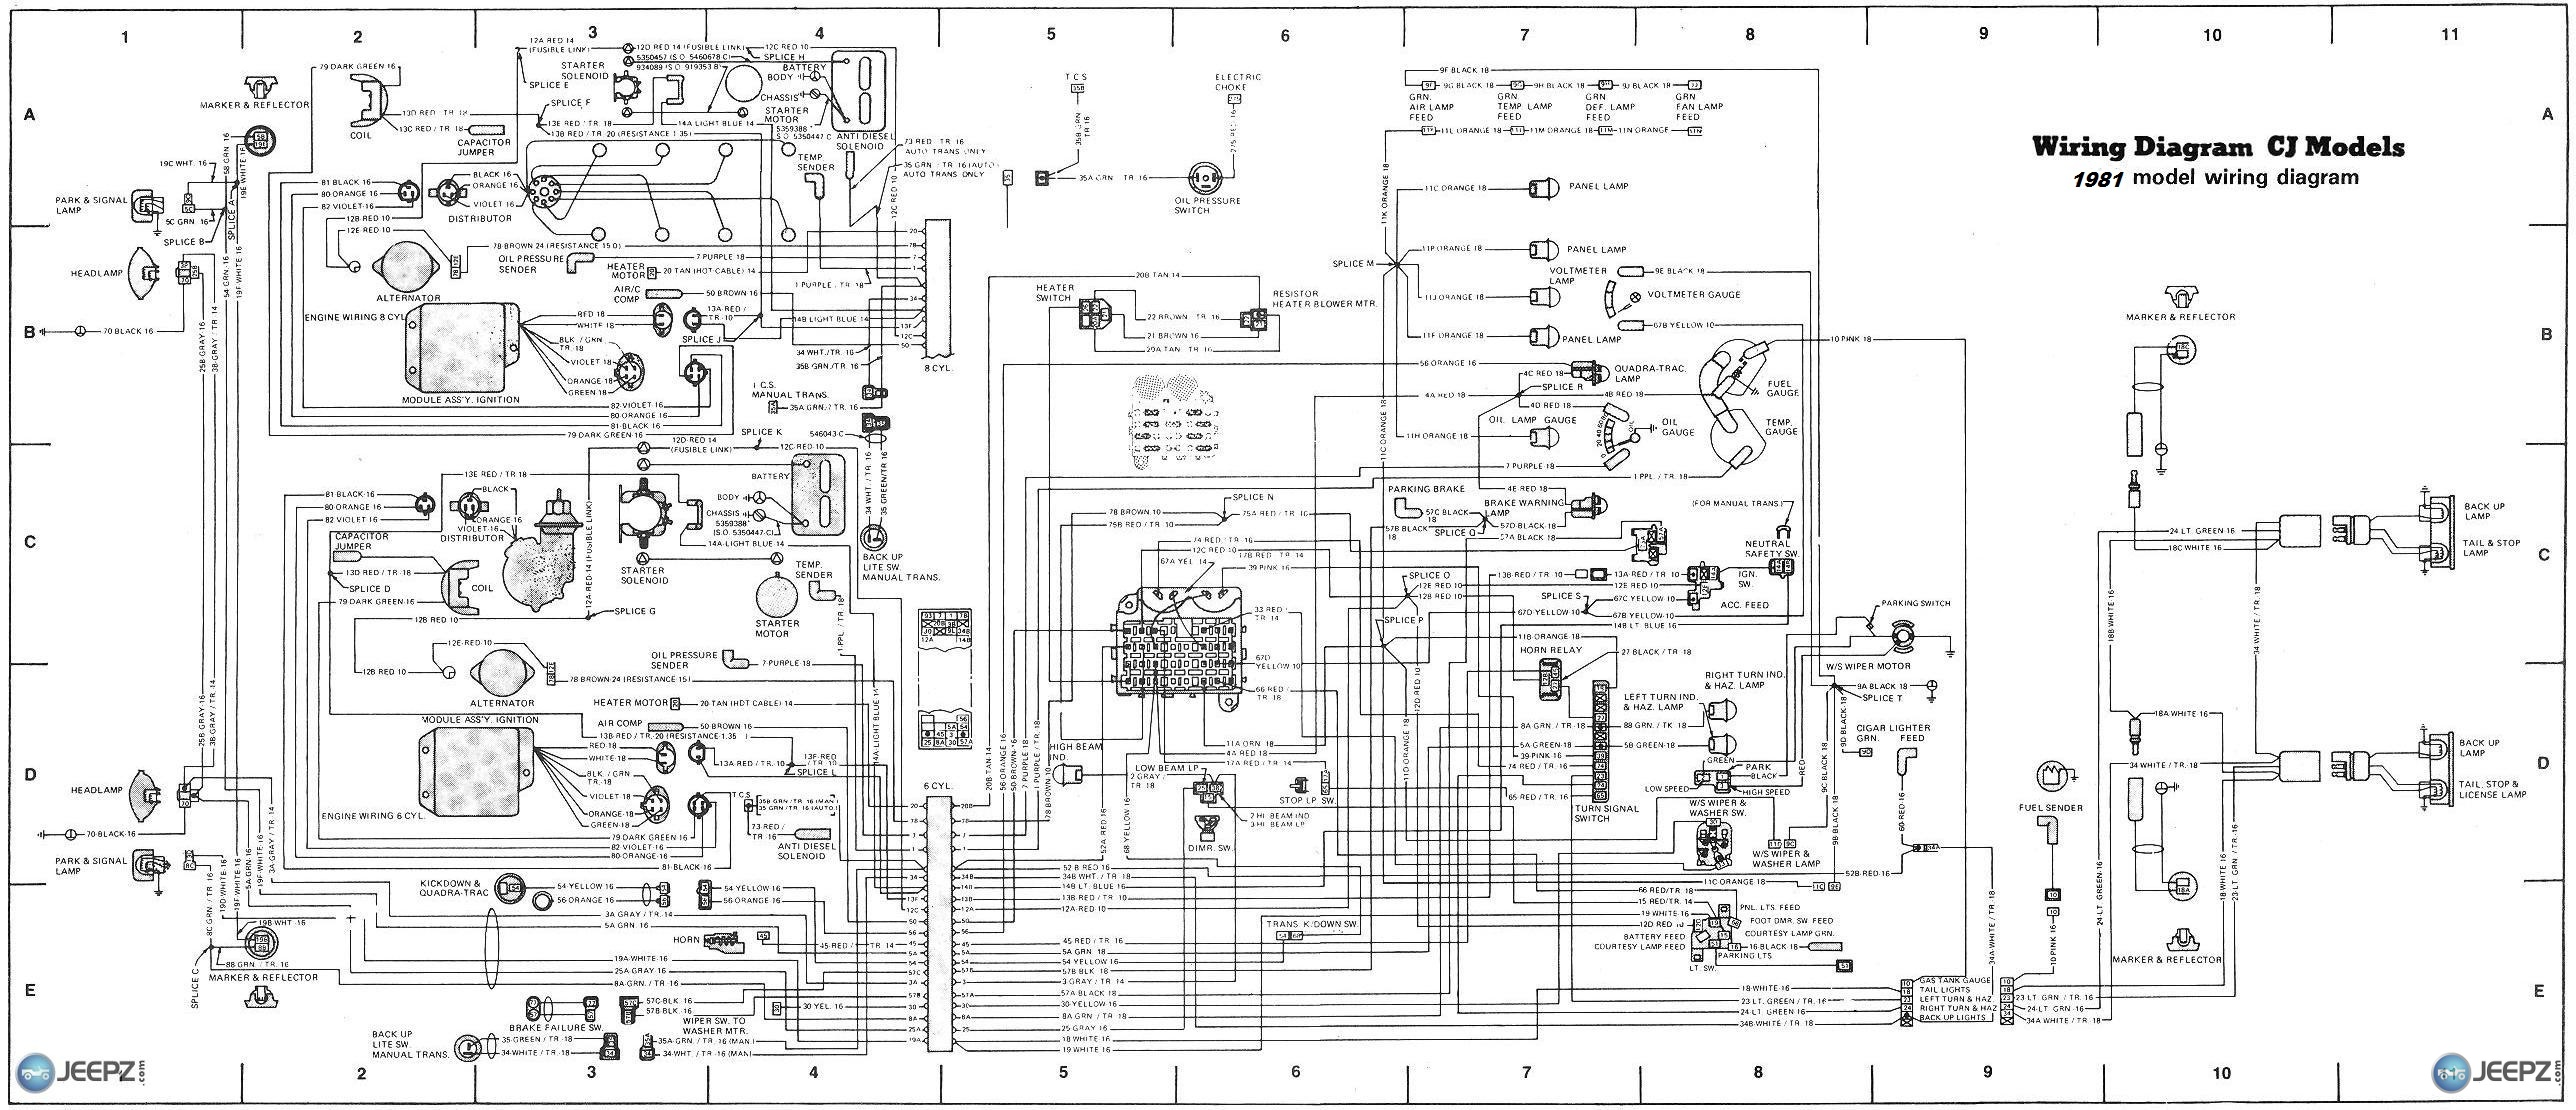 2005 Jeep Grand Cherokee Window Wiring Diagram Archive Of Fuel System Moreover Electric Garage Heater 1980 Cj7 Auto Electrical Rh Stanford Edu Uk Co Gov Bitoku